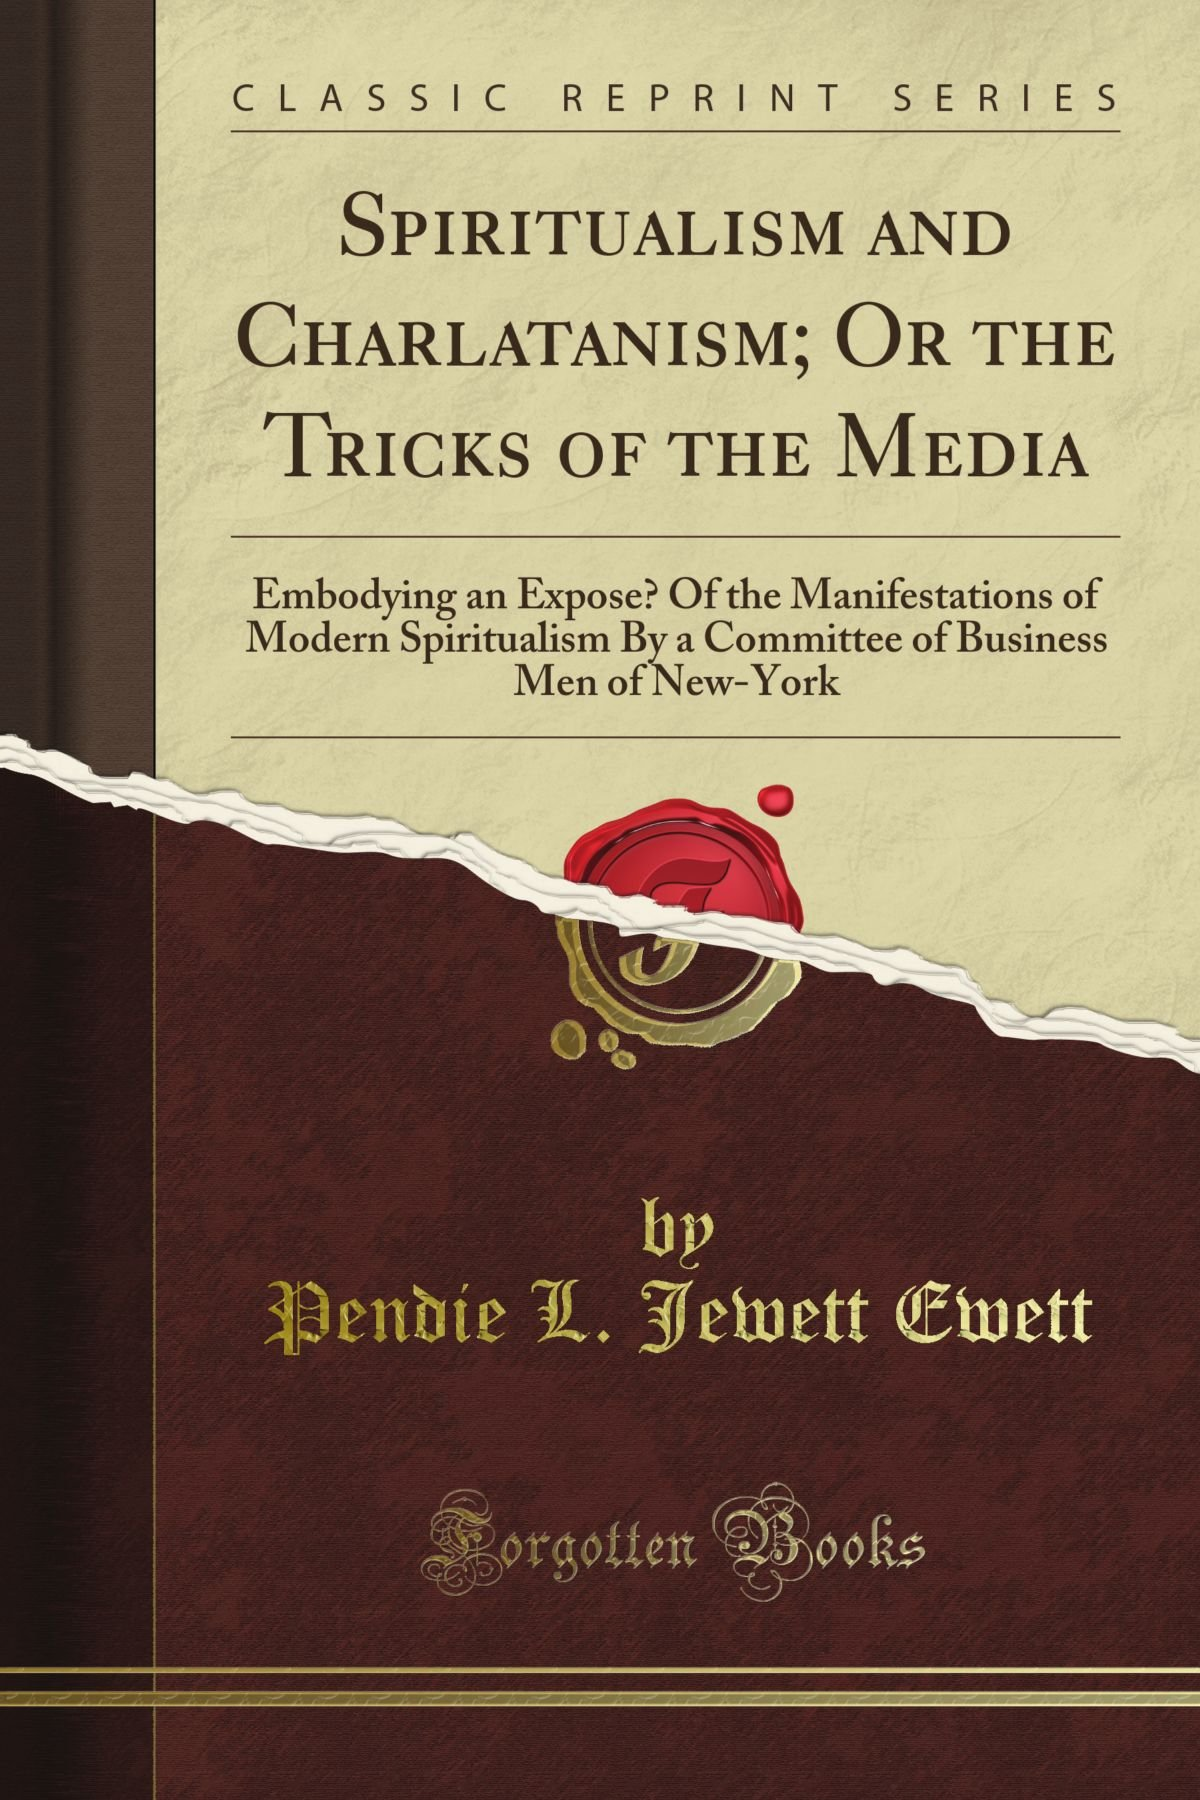 Download Spiritualism and Charlatanism; Or the Tricks of the Media: Embodying an Expose? Of the Manifestations of Modern Spiritualism By a Committee of Business Men of New-York (Classic Reprint) PDF